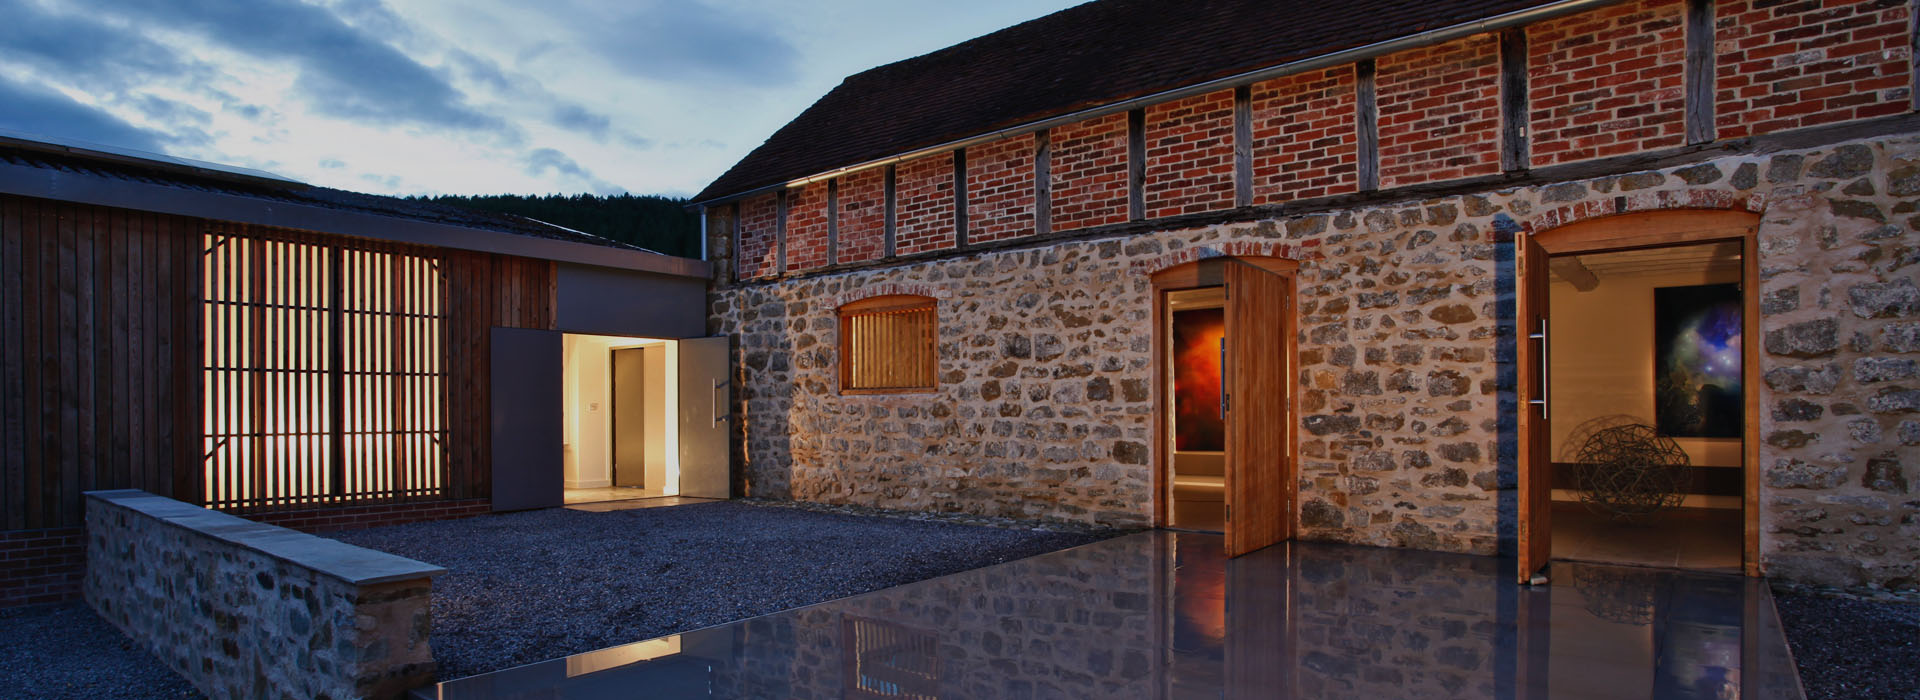 Canwood Gallery contemporary barn conversion